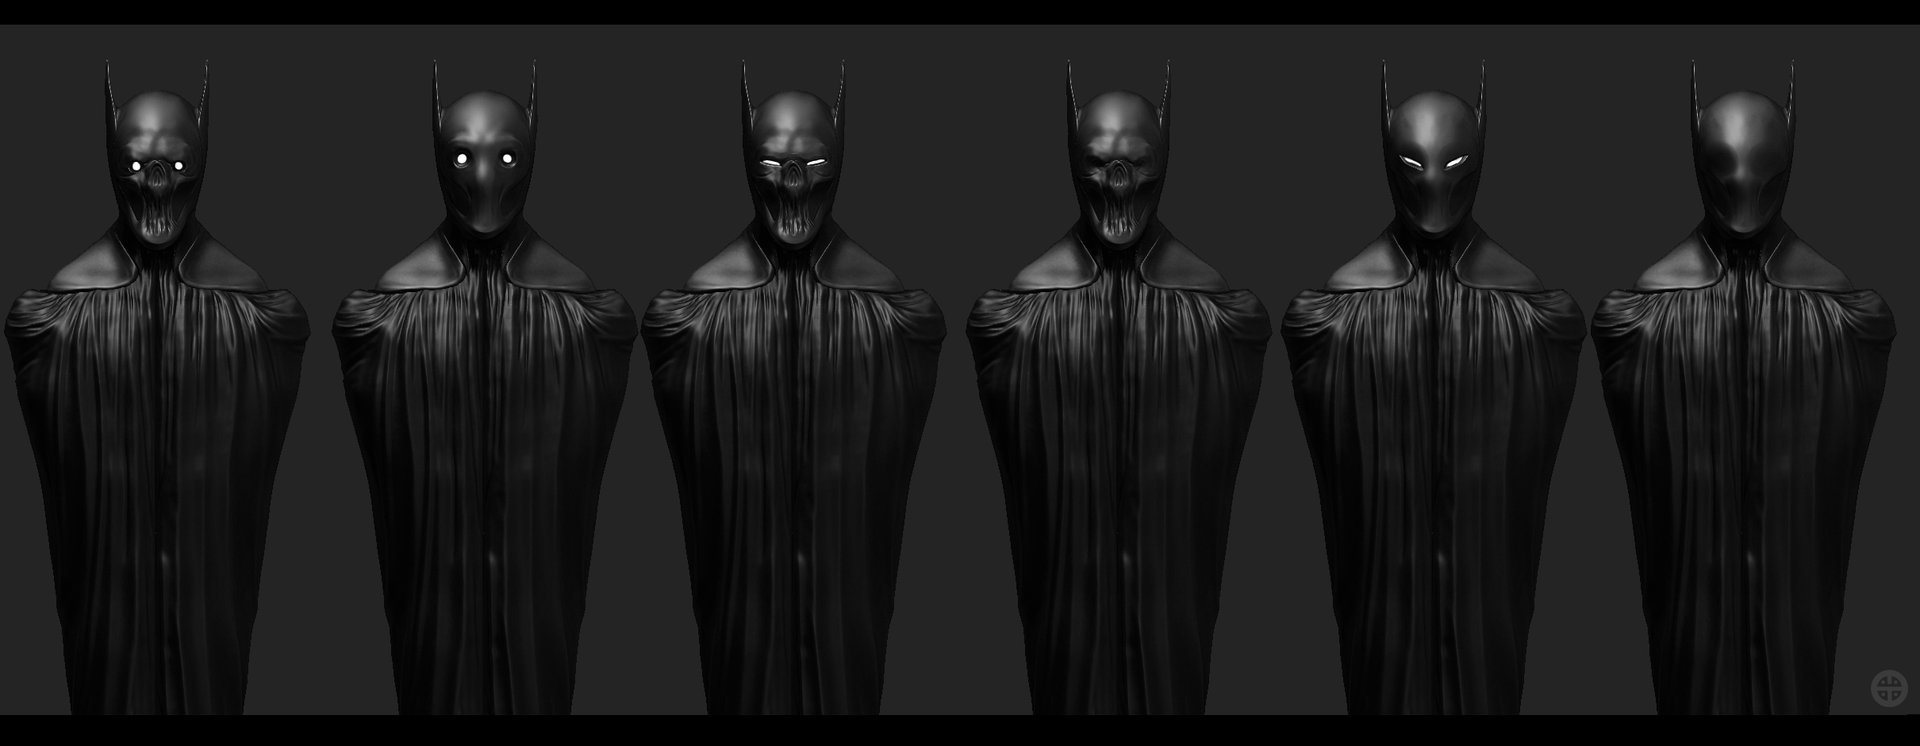 Batman concepts